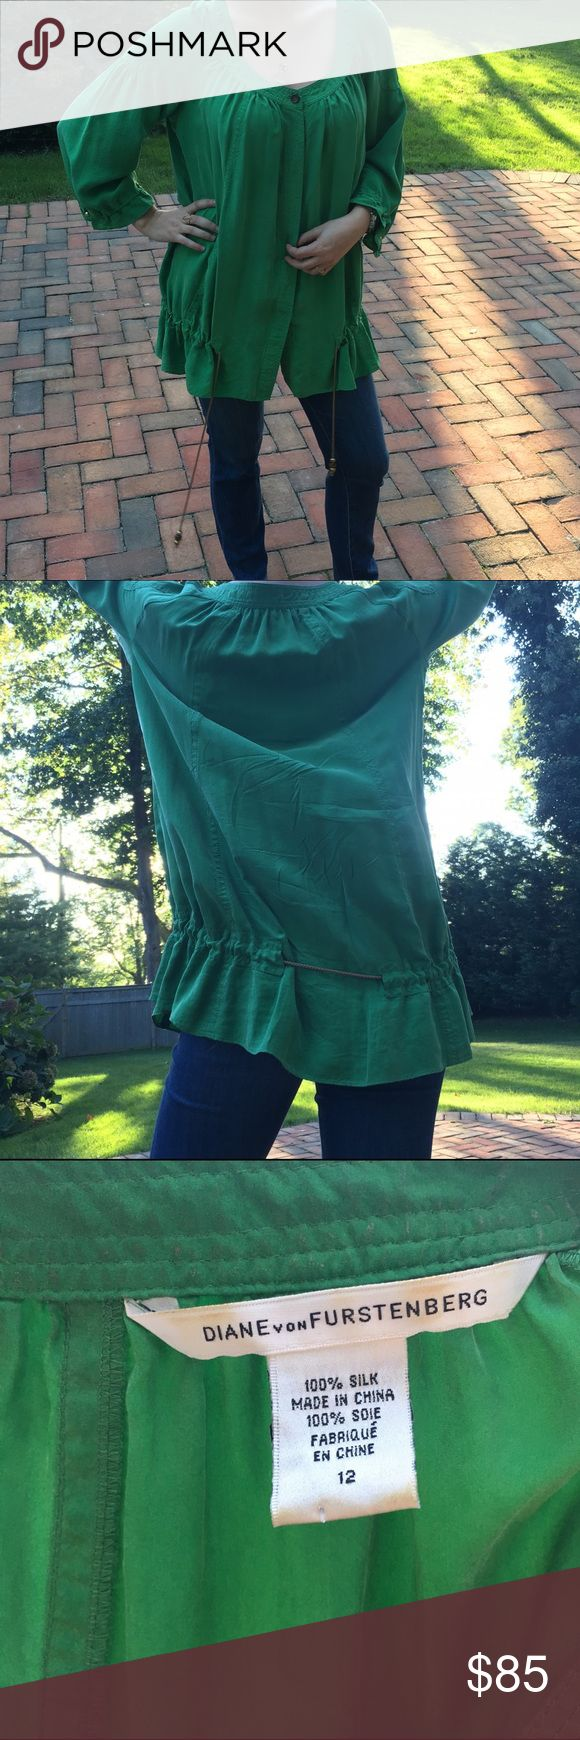 "Diane Von Furstenberg Green Silk Tunic Excellent condition. 100% Silk. ALL items are authentic. Model is 5'7"" and 135 lbs. Offers welcome, as everything must be gone by mid-November. Diane von Furstenberg Tops Blouses"